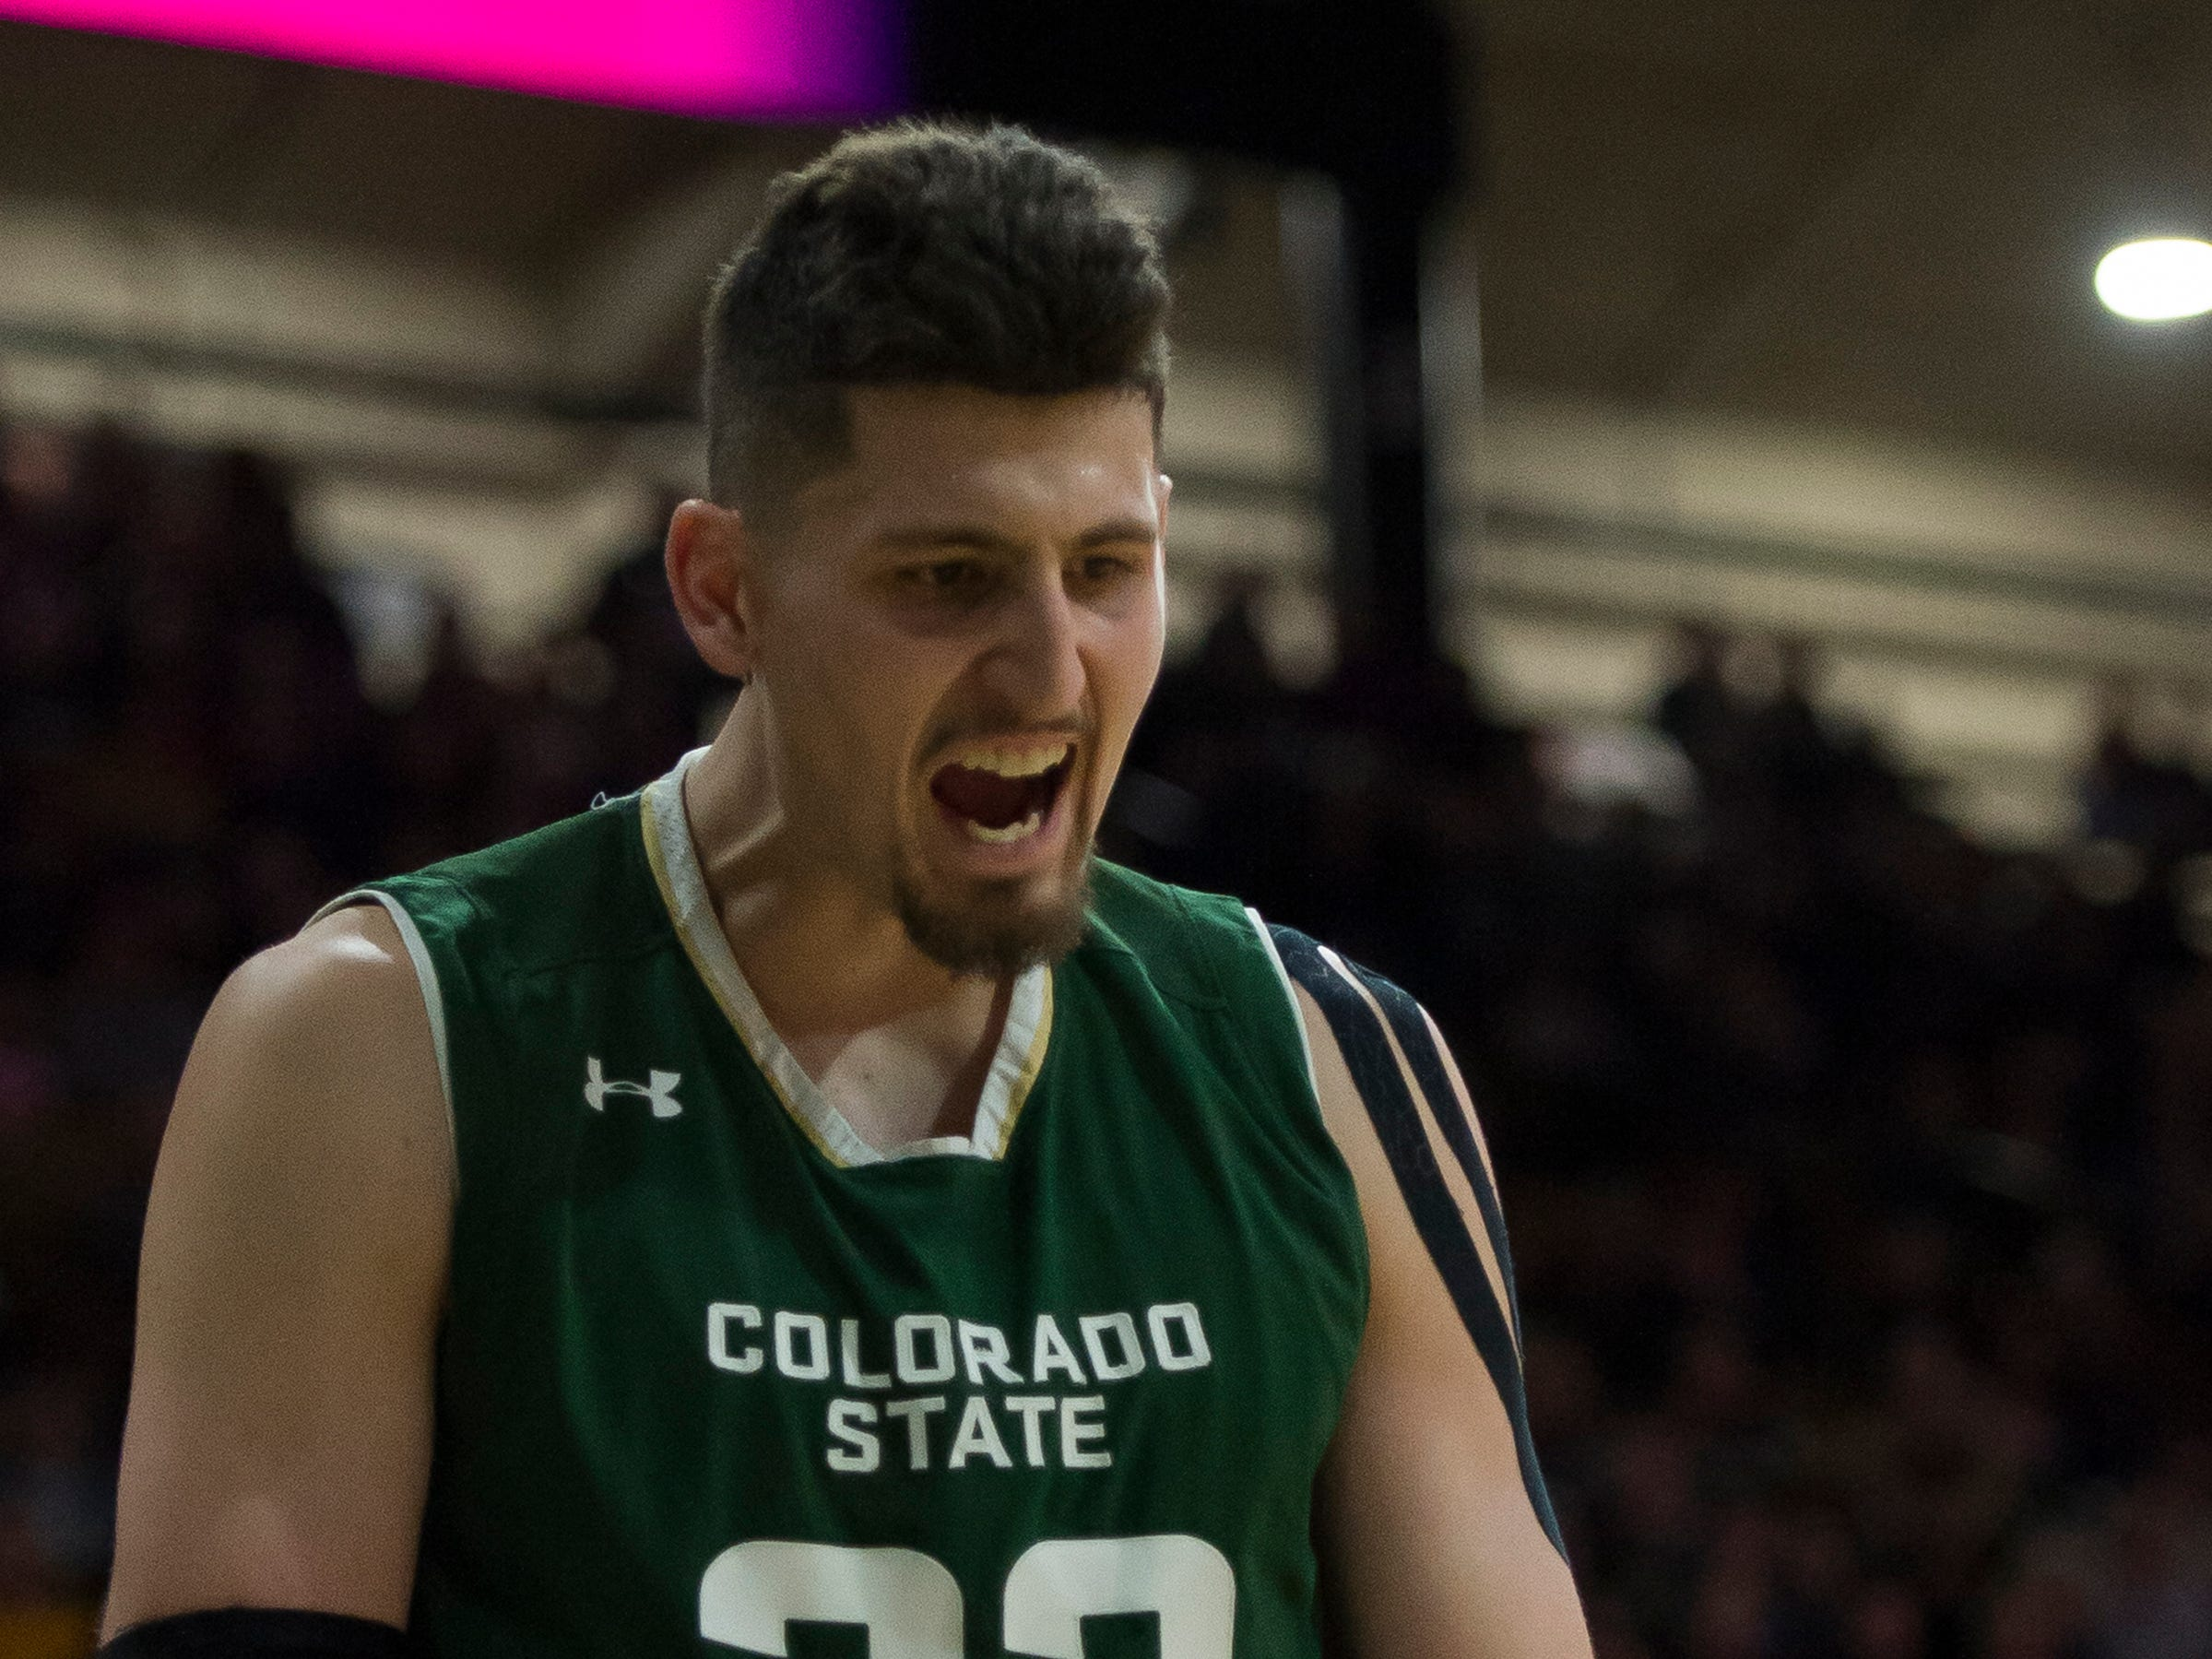 Colorado State University junior center Nico Carvacho (32) reacts after sinking a layup during a game against the University of Colorado on Saturday, Dec. 1, 2018, at the CU Event Center in Boulder, Colo.